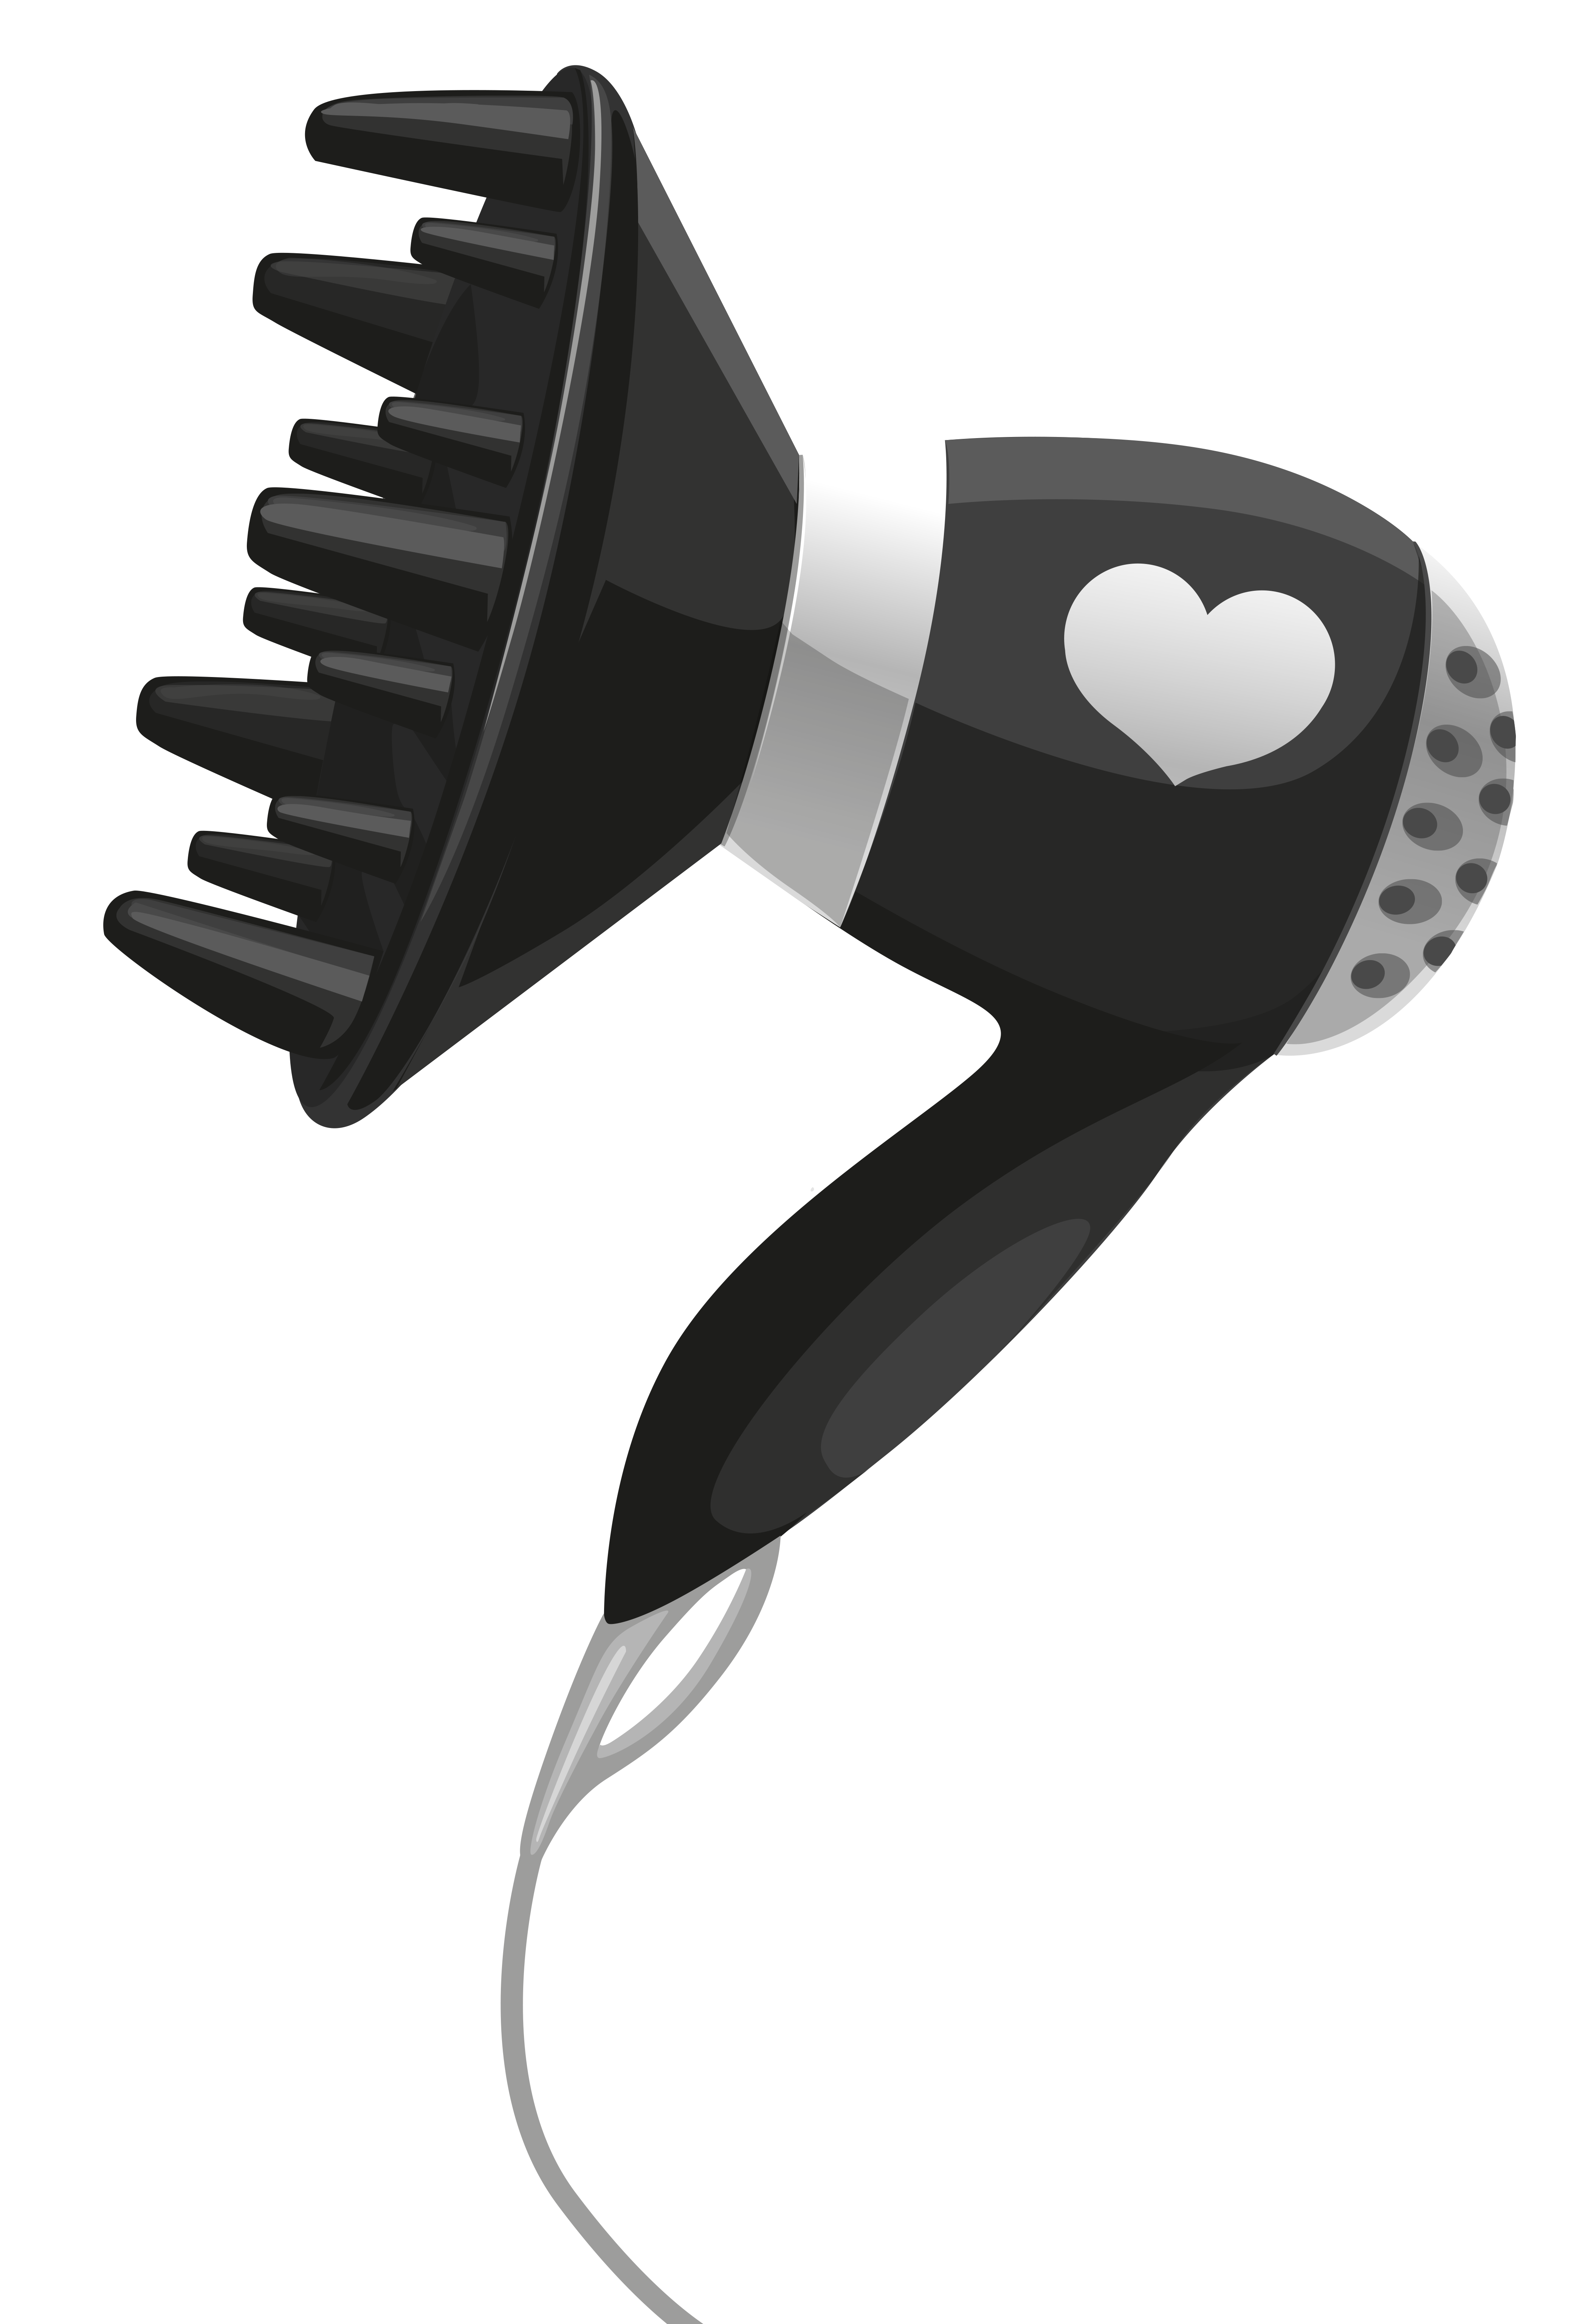 image library stock Black hairdryer with heart. Dryer clipart transparent background